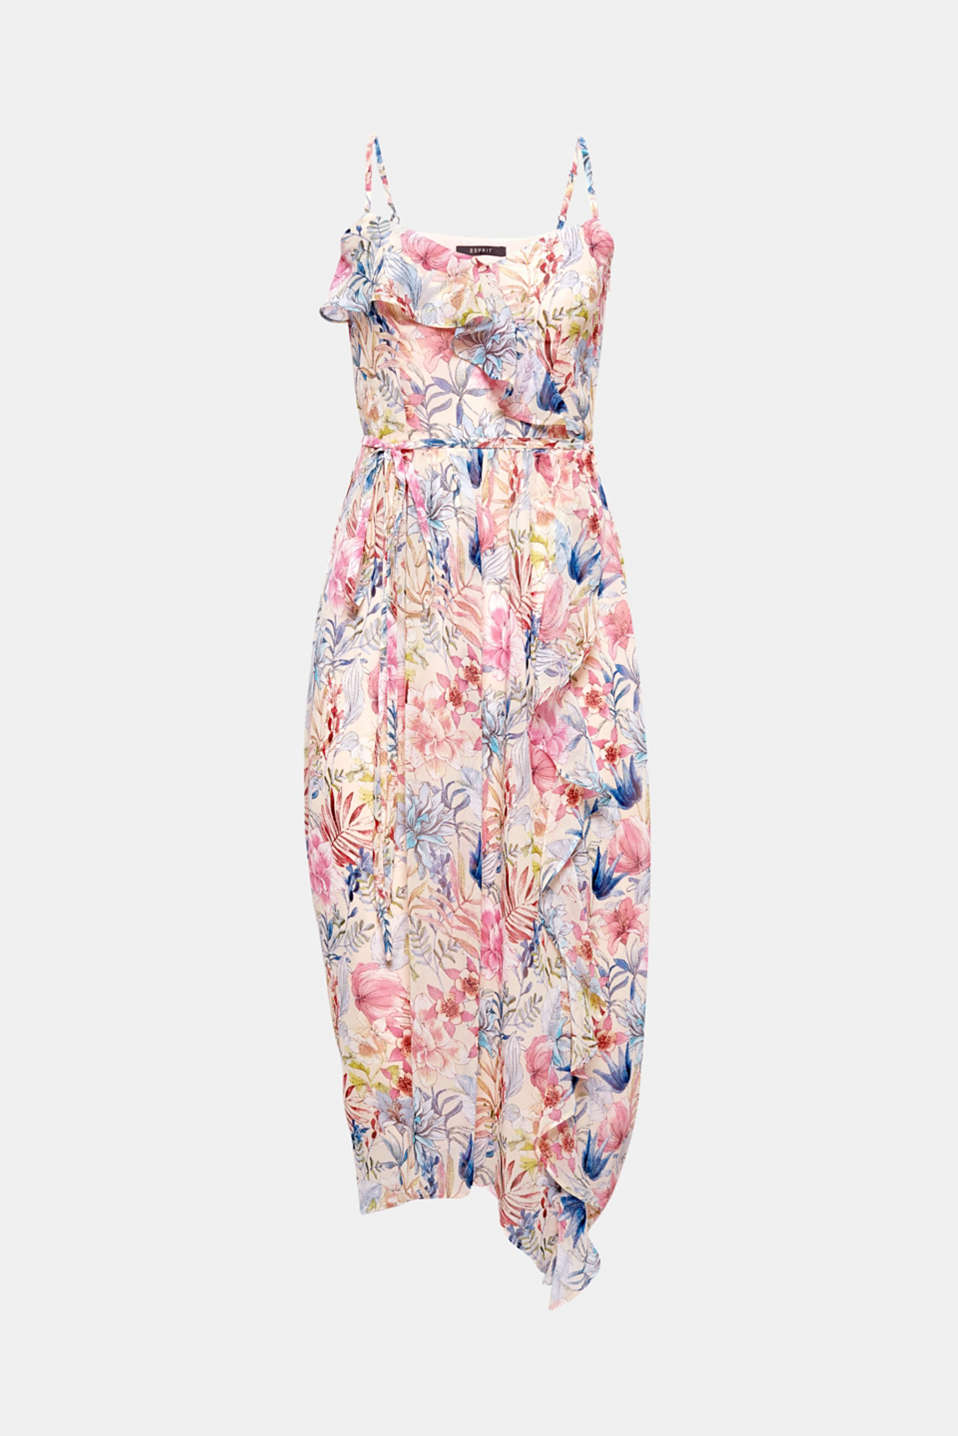 Whether as part of a casual style or stylish and classic, in this striking maxi dress with a floral print, you will exude elegance and a romantic flair at every party.